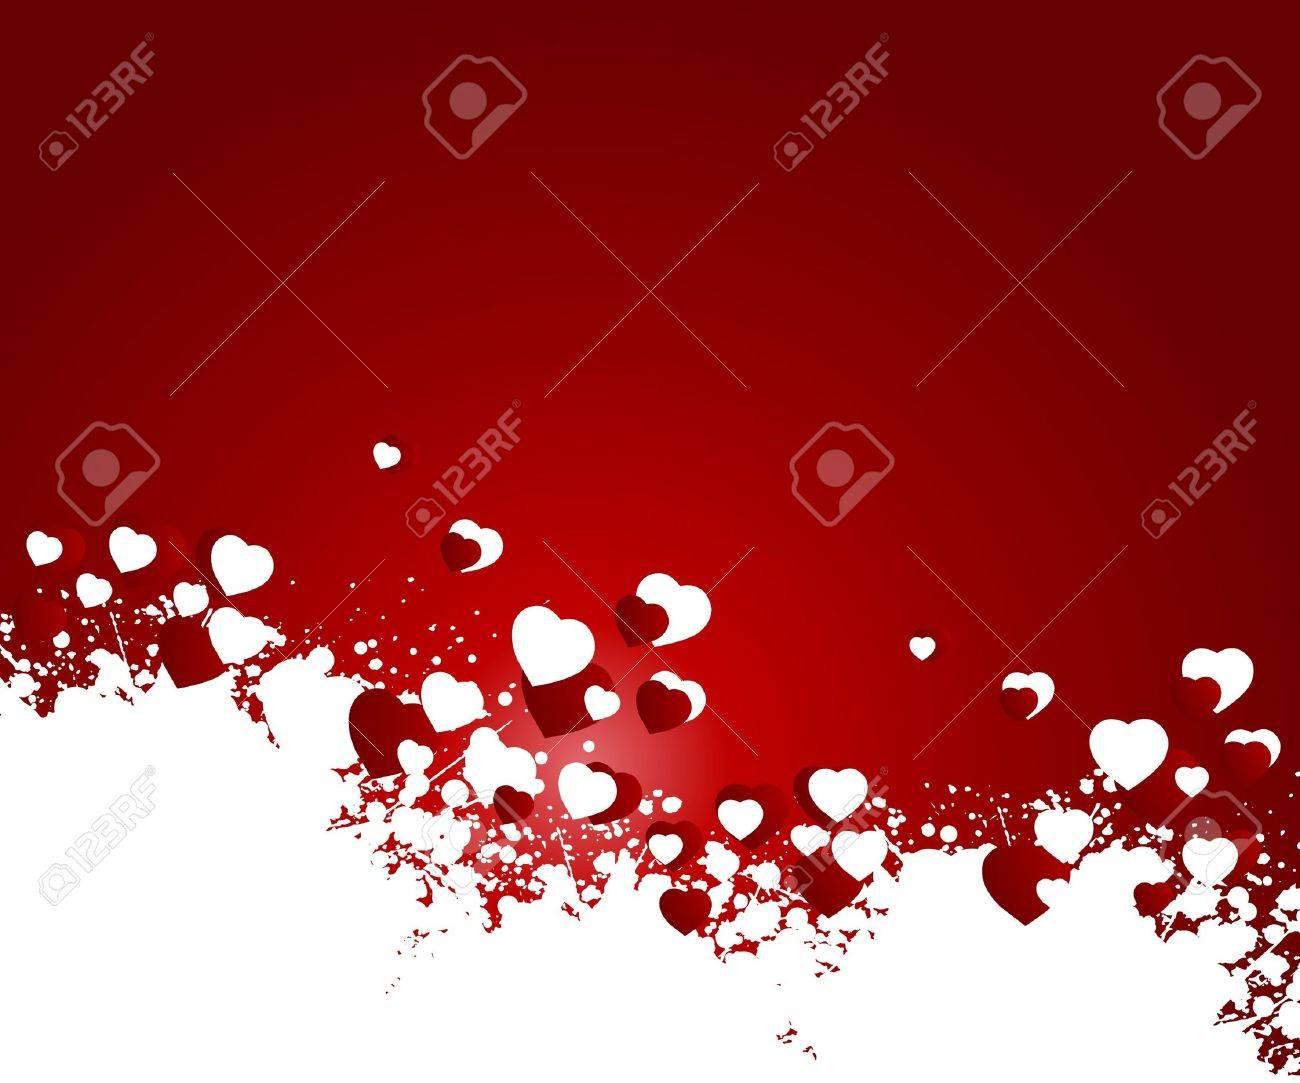 Valentine Illustration, perfect concept for valentine's day easy to use it as greeting card, poster, flyer, Ad. Stock Vector - 7866565